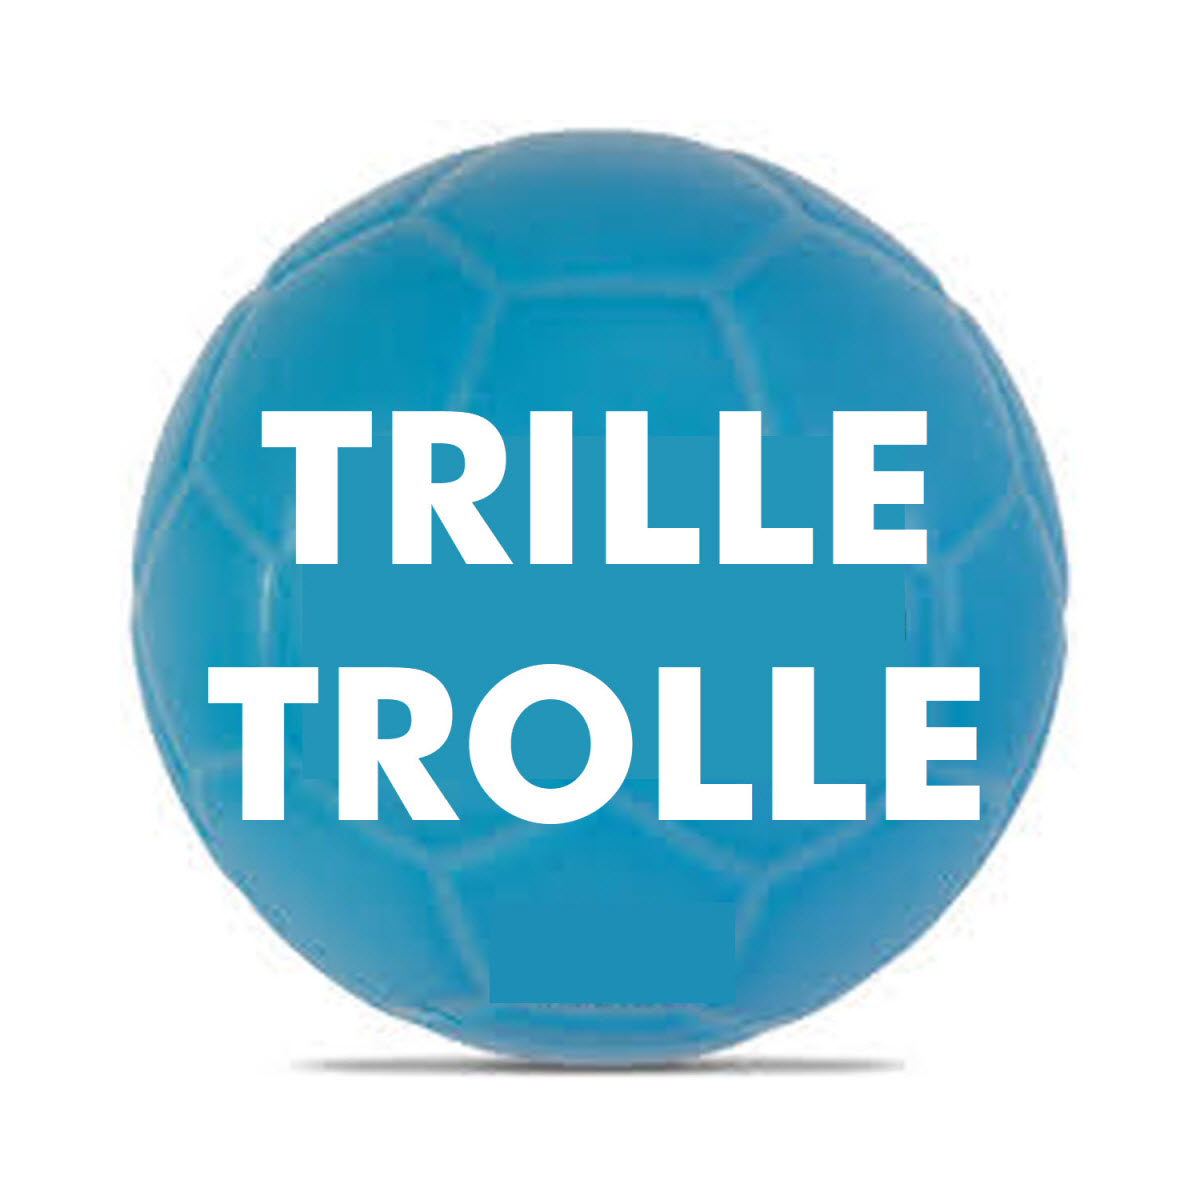 Trille trolle bold